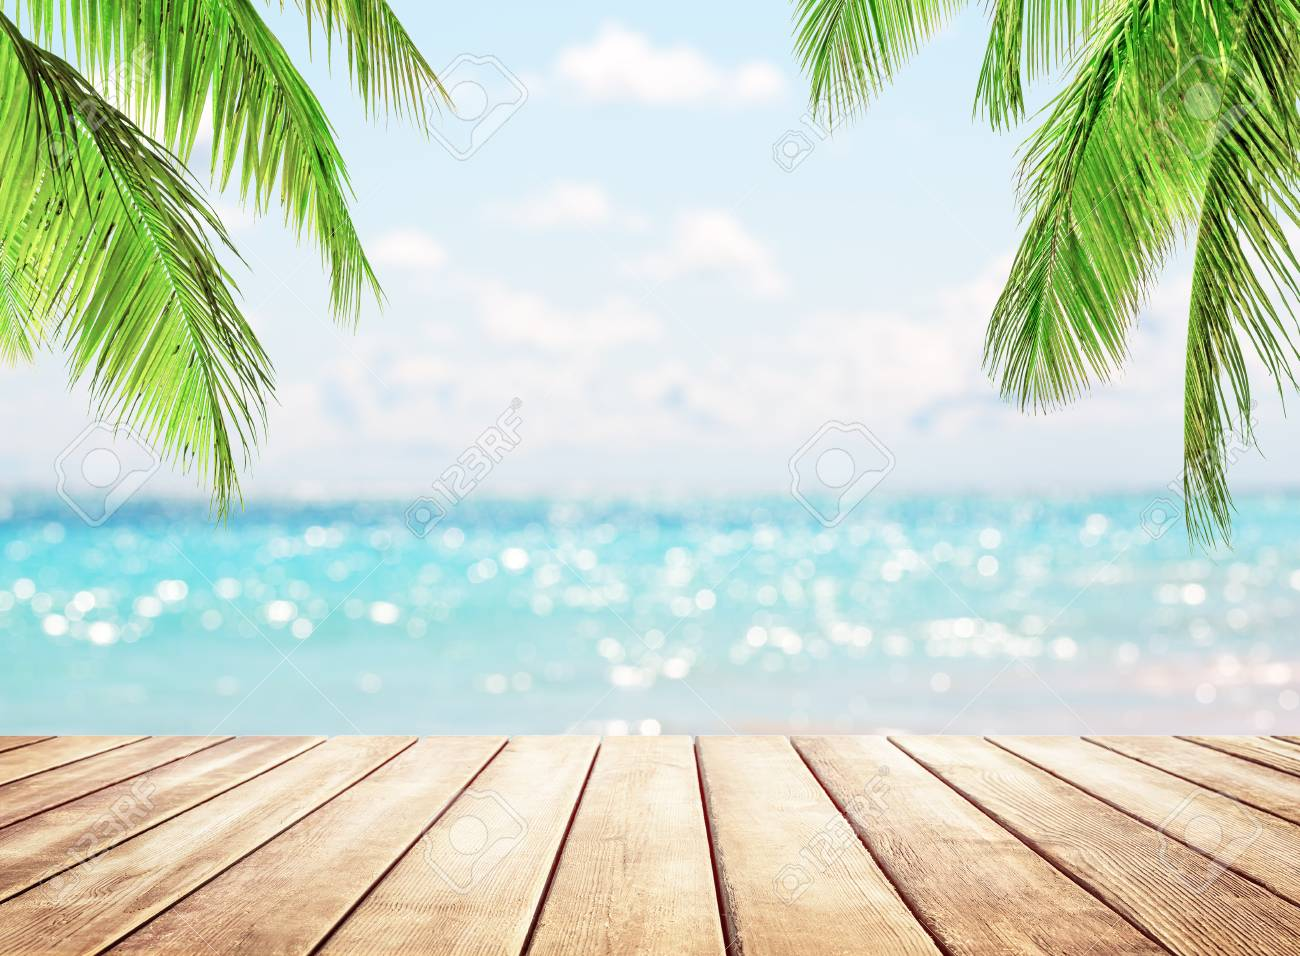 Wooden table top on blue sea and white sand beach background. Coconut palm trees against blue sky and beautiful beach in Punta Cana, Dominican Republic. Vacation holidays background wallpaper. - 125324224